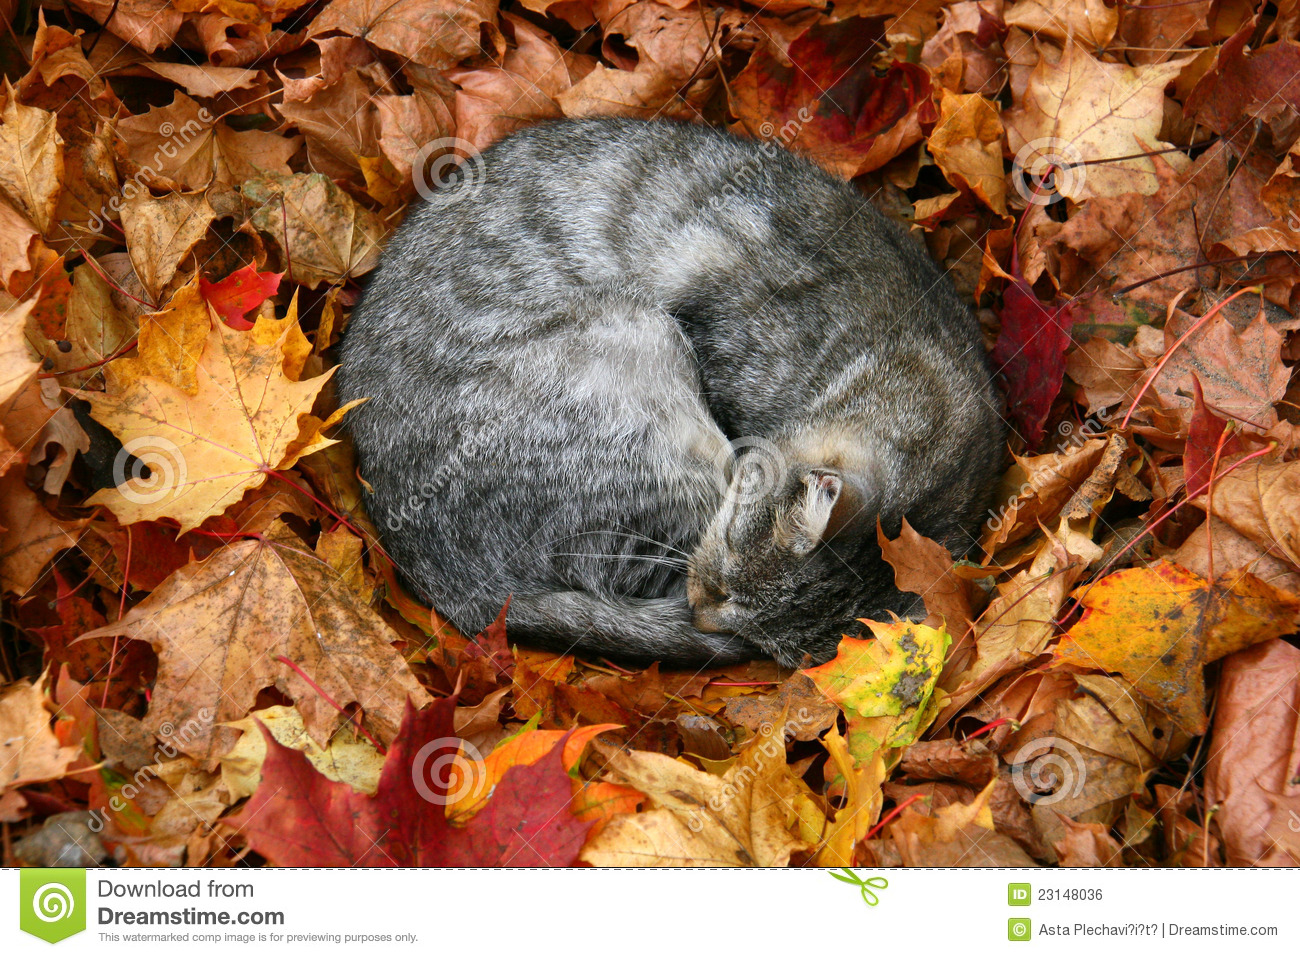 Autumn Leaf Fall Wallpaper Cat In Autumn Leaves Stock Photo Image Of Leaves Grey